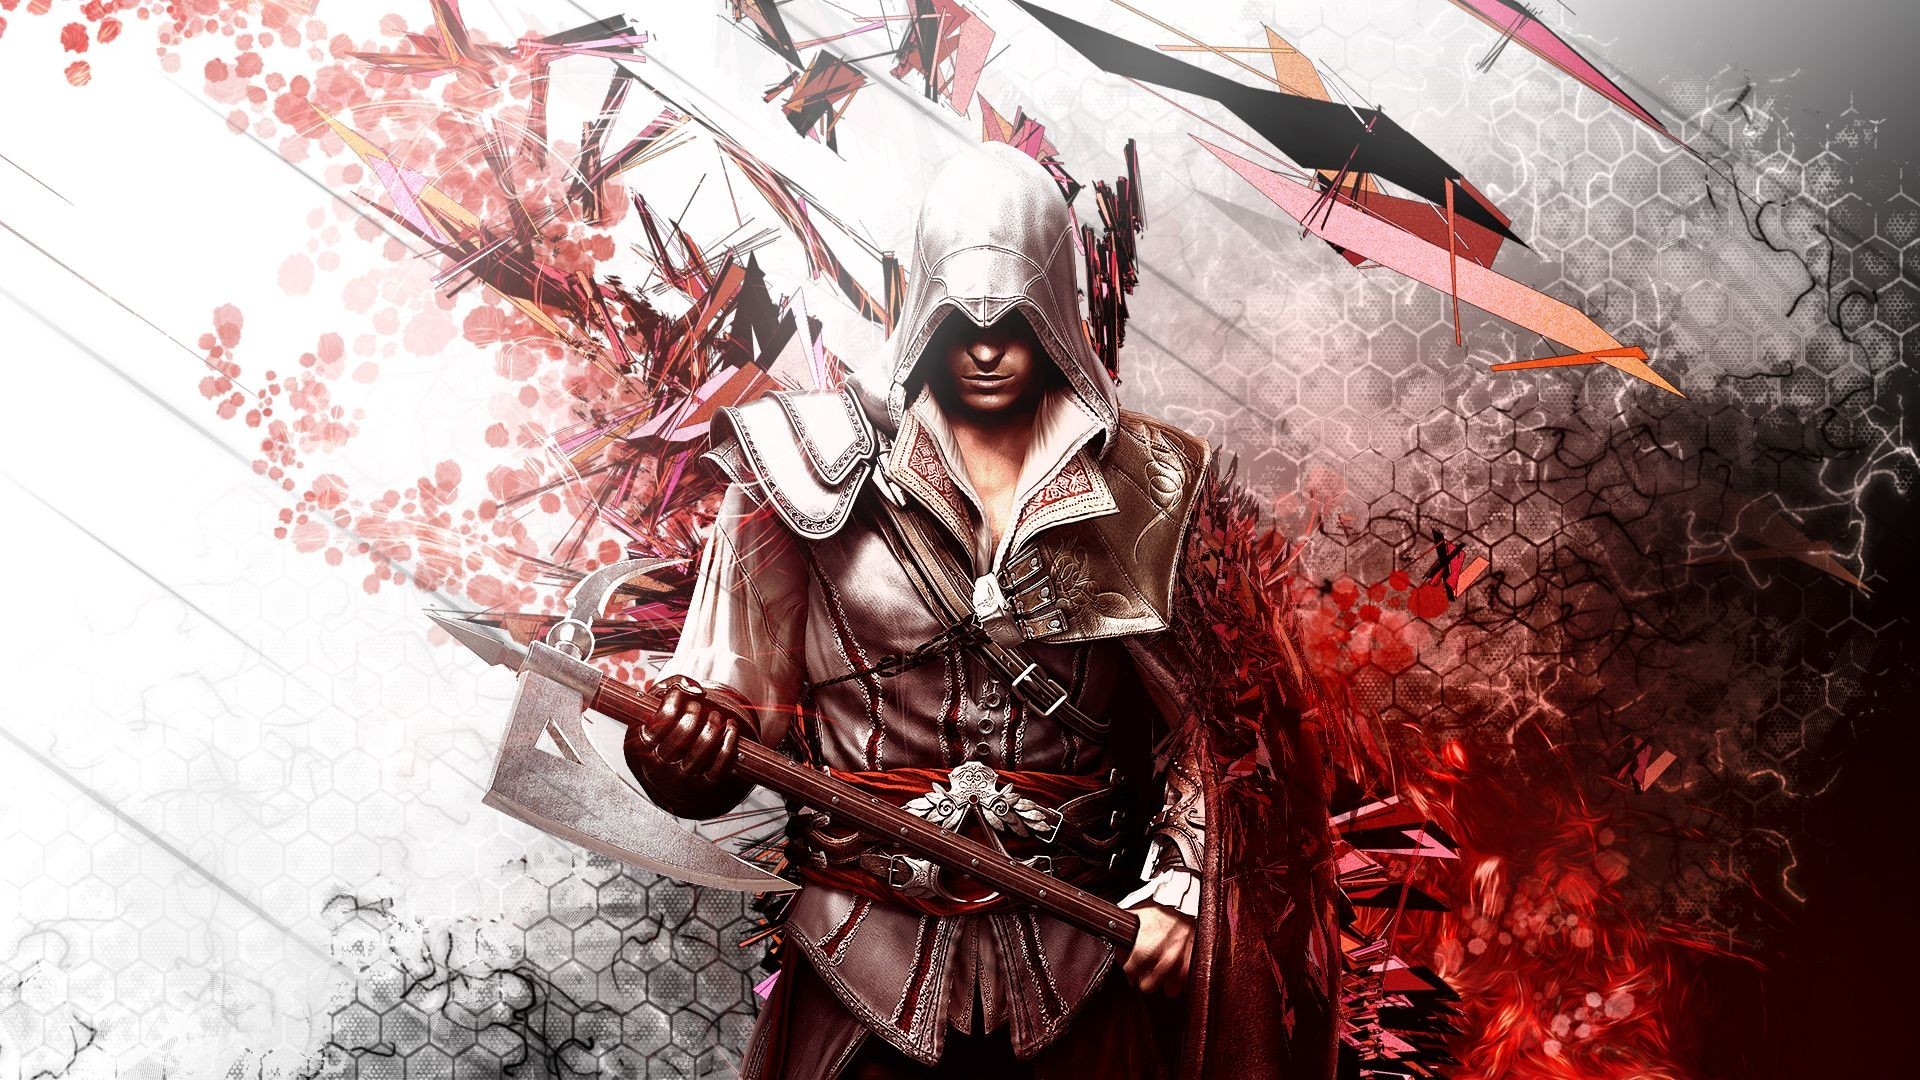 Assassins Creed Wallpaper HD | PixelsTalk Net